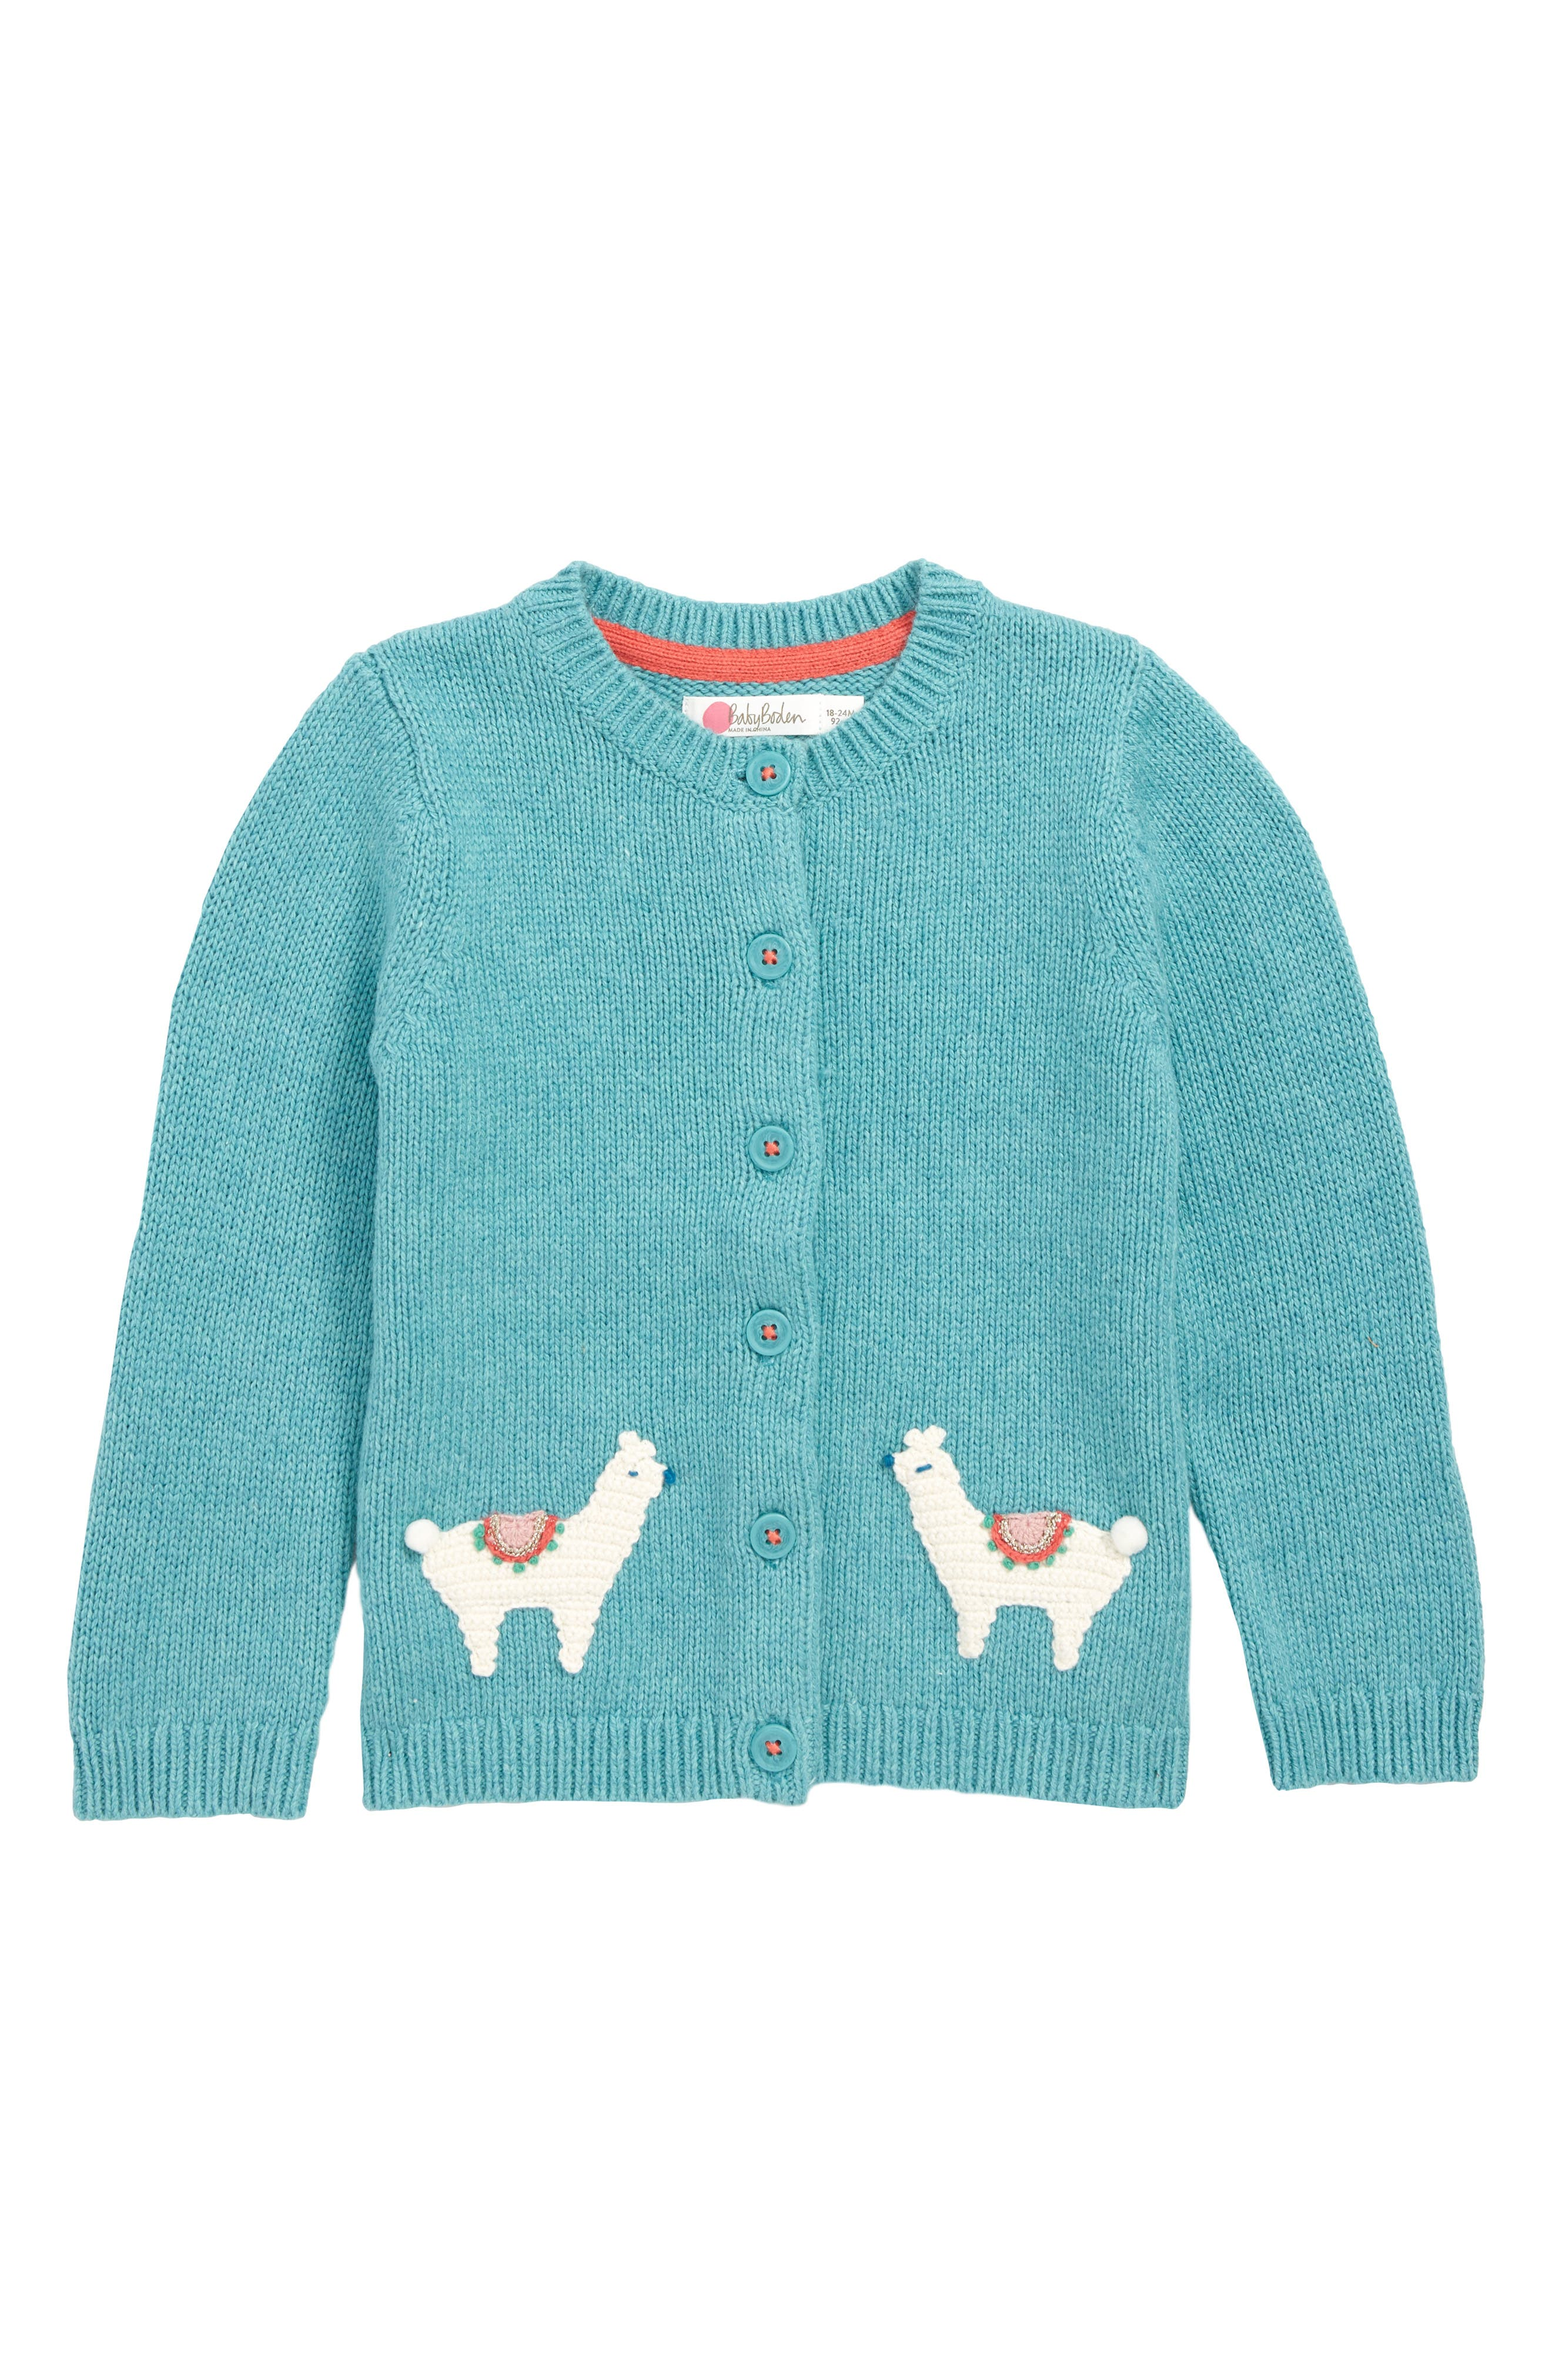 Toddler Girls Mini Boden Characterful Crochet Knit Cardigan Size 03M  Green